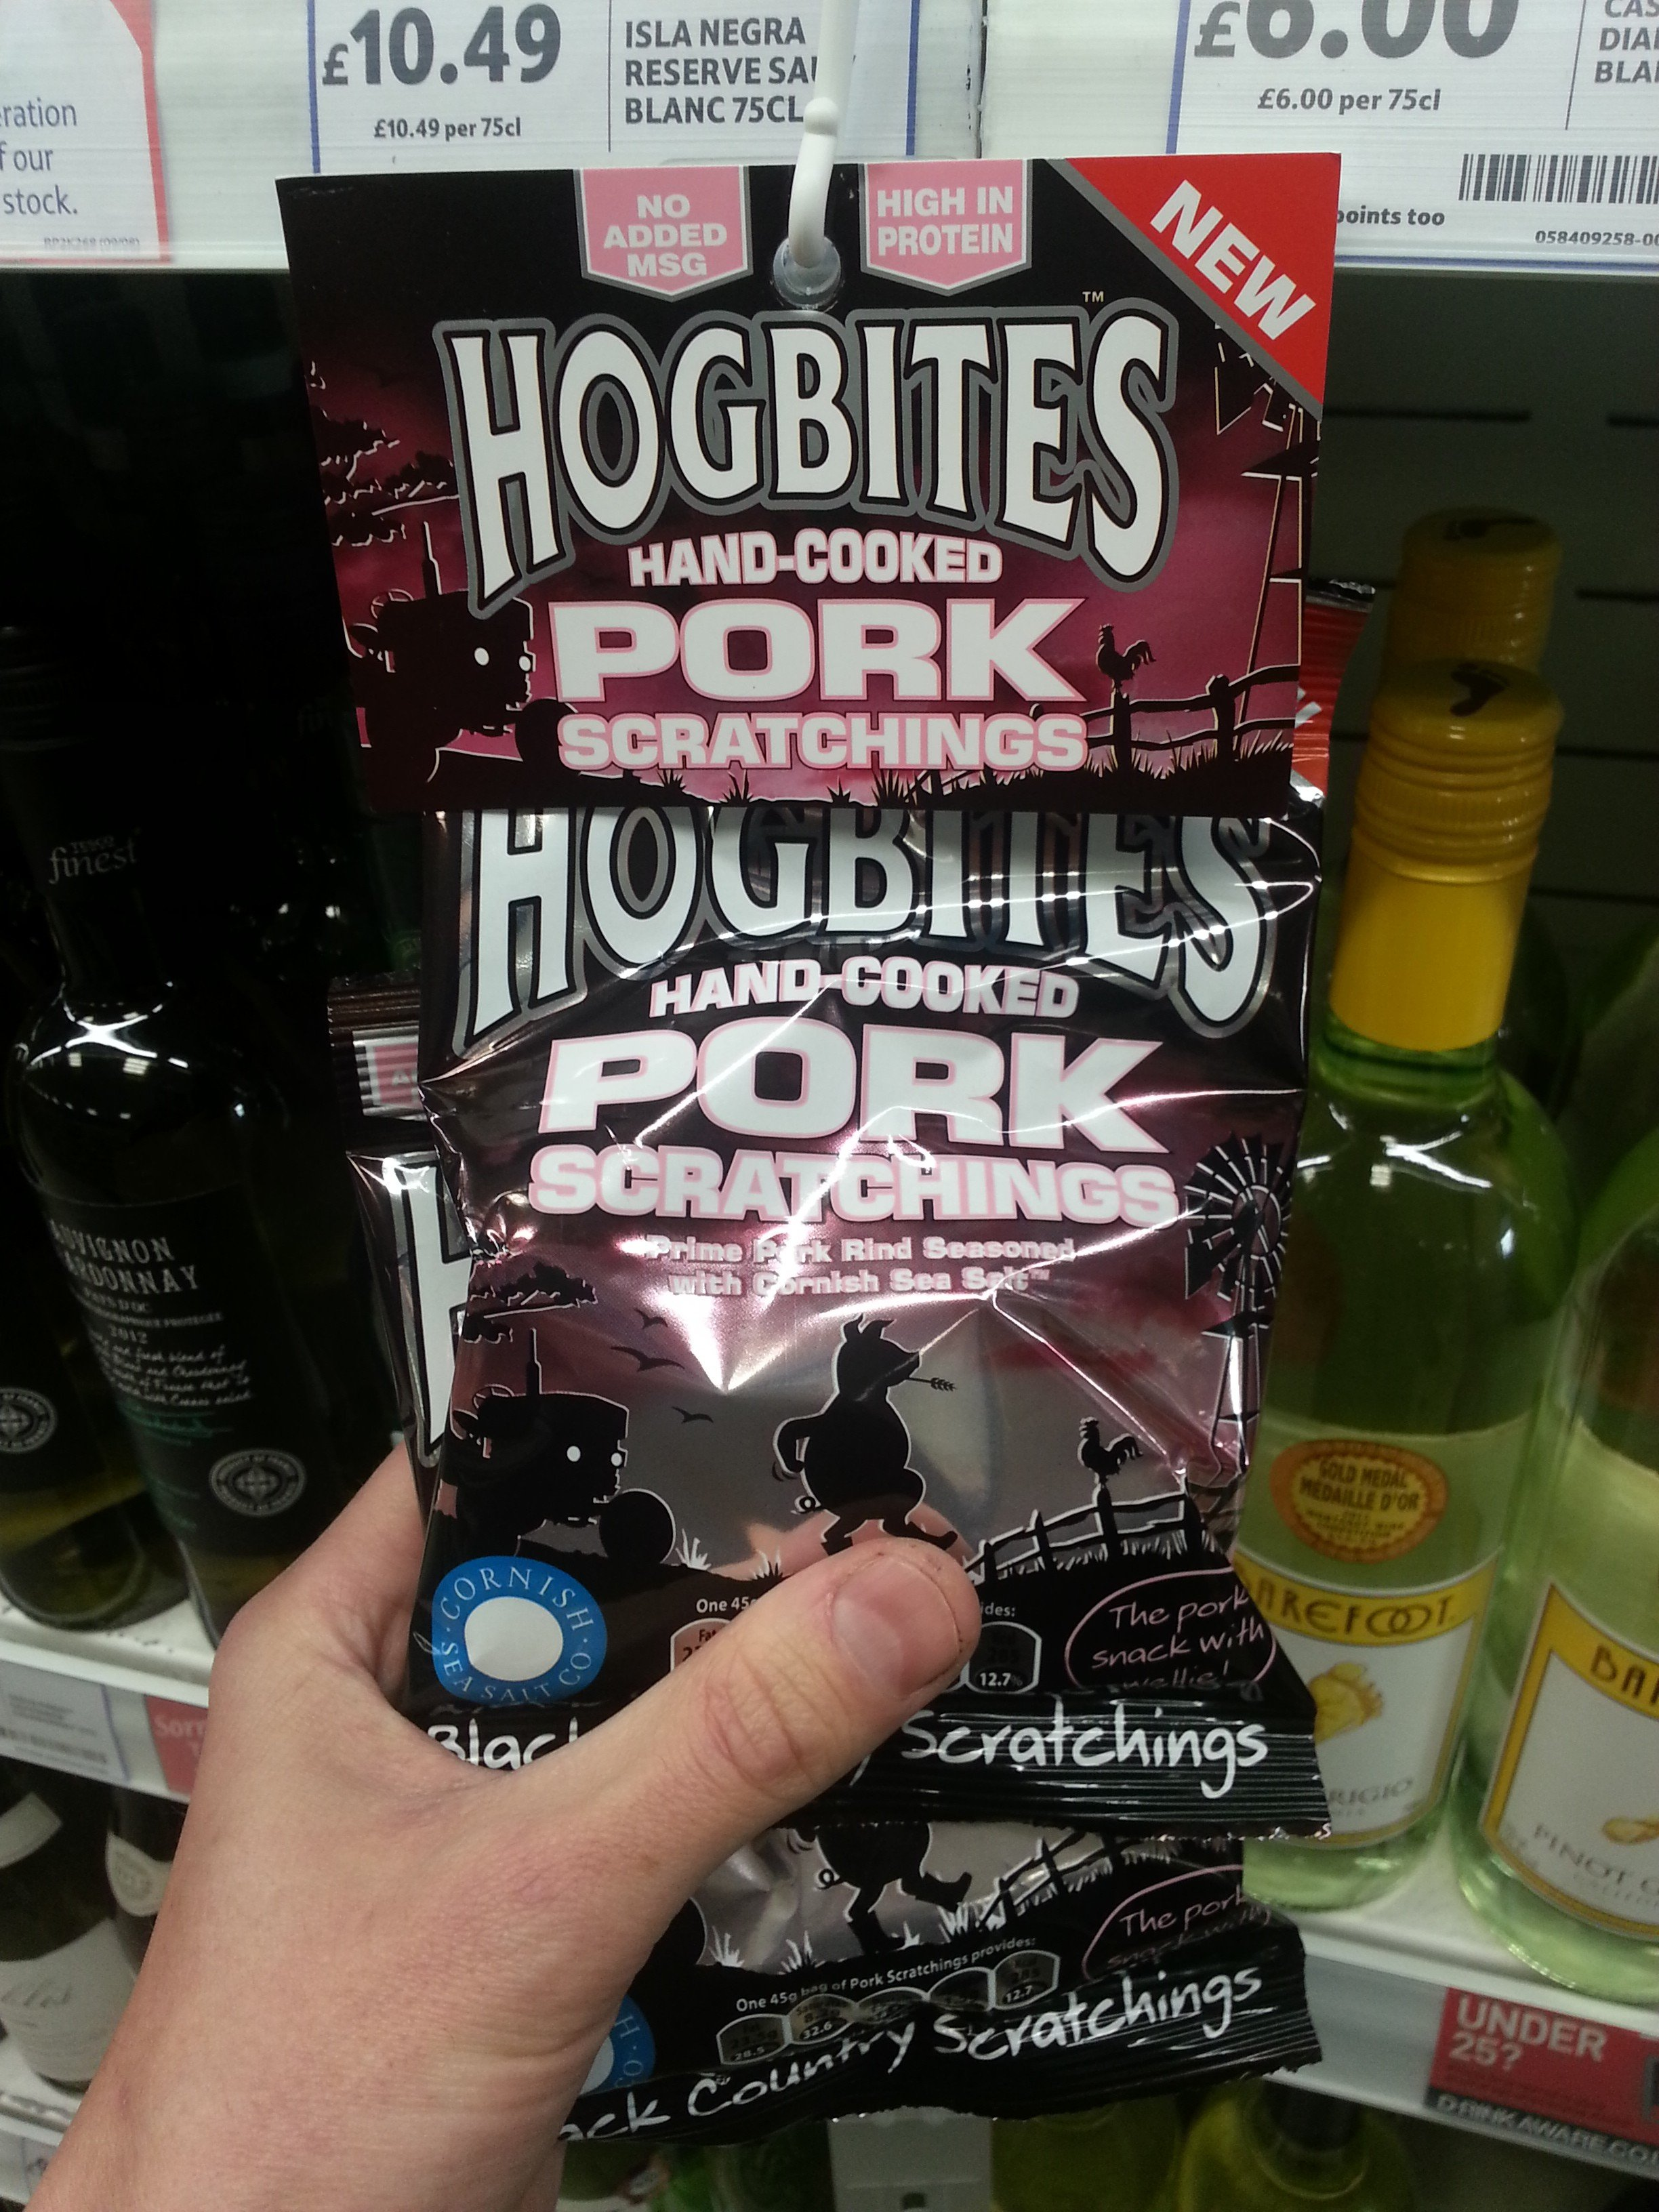 20140125 135639 e1390659292847 - Hogbites Pork Scratchings